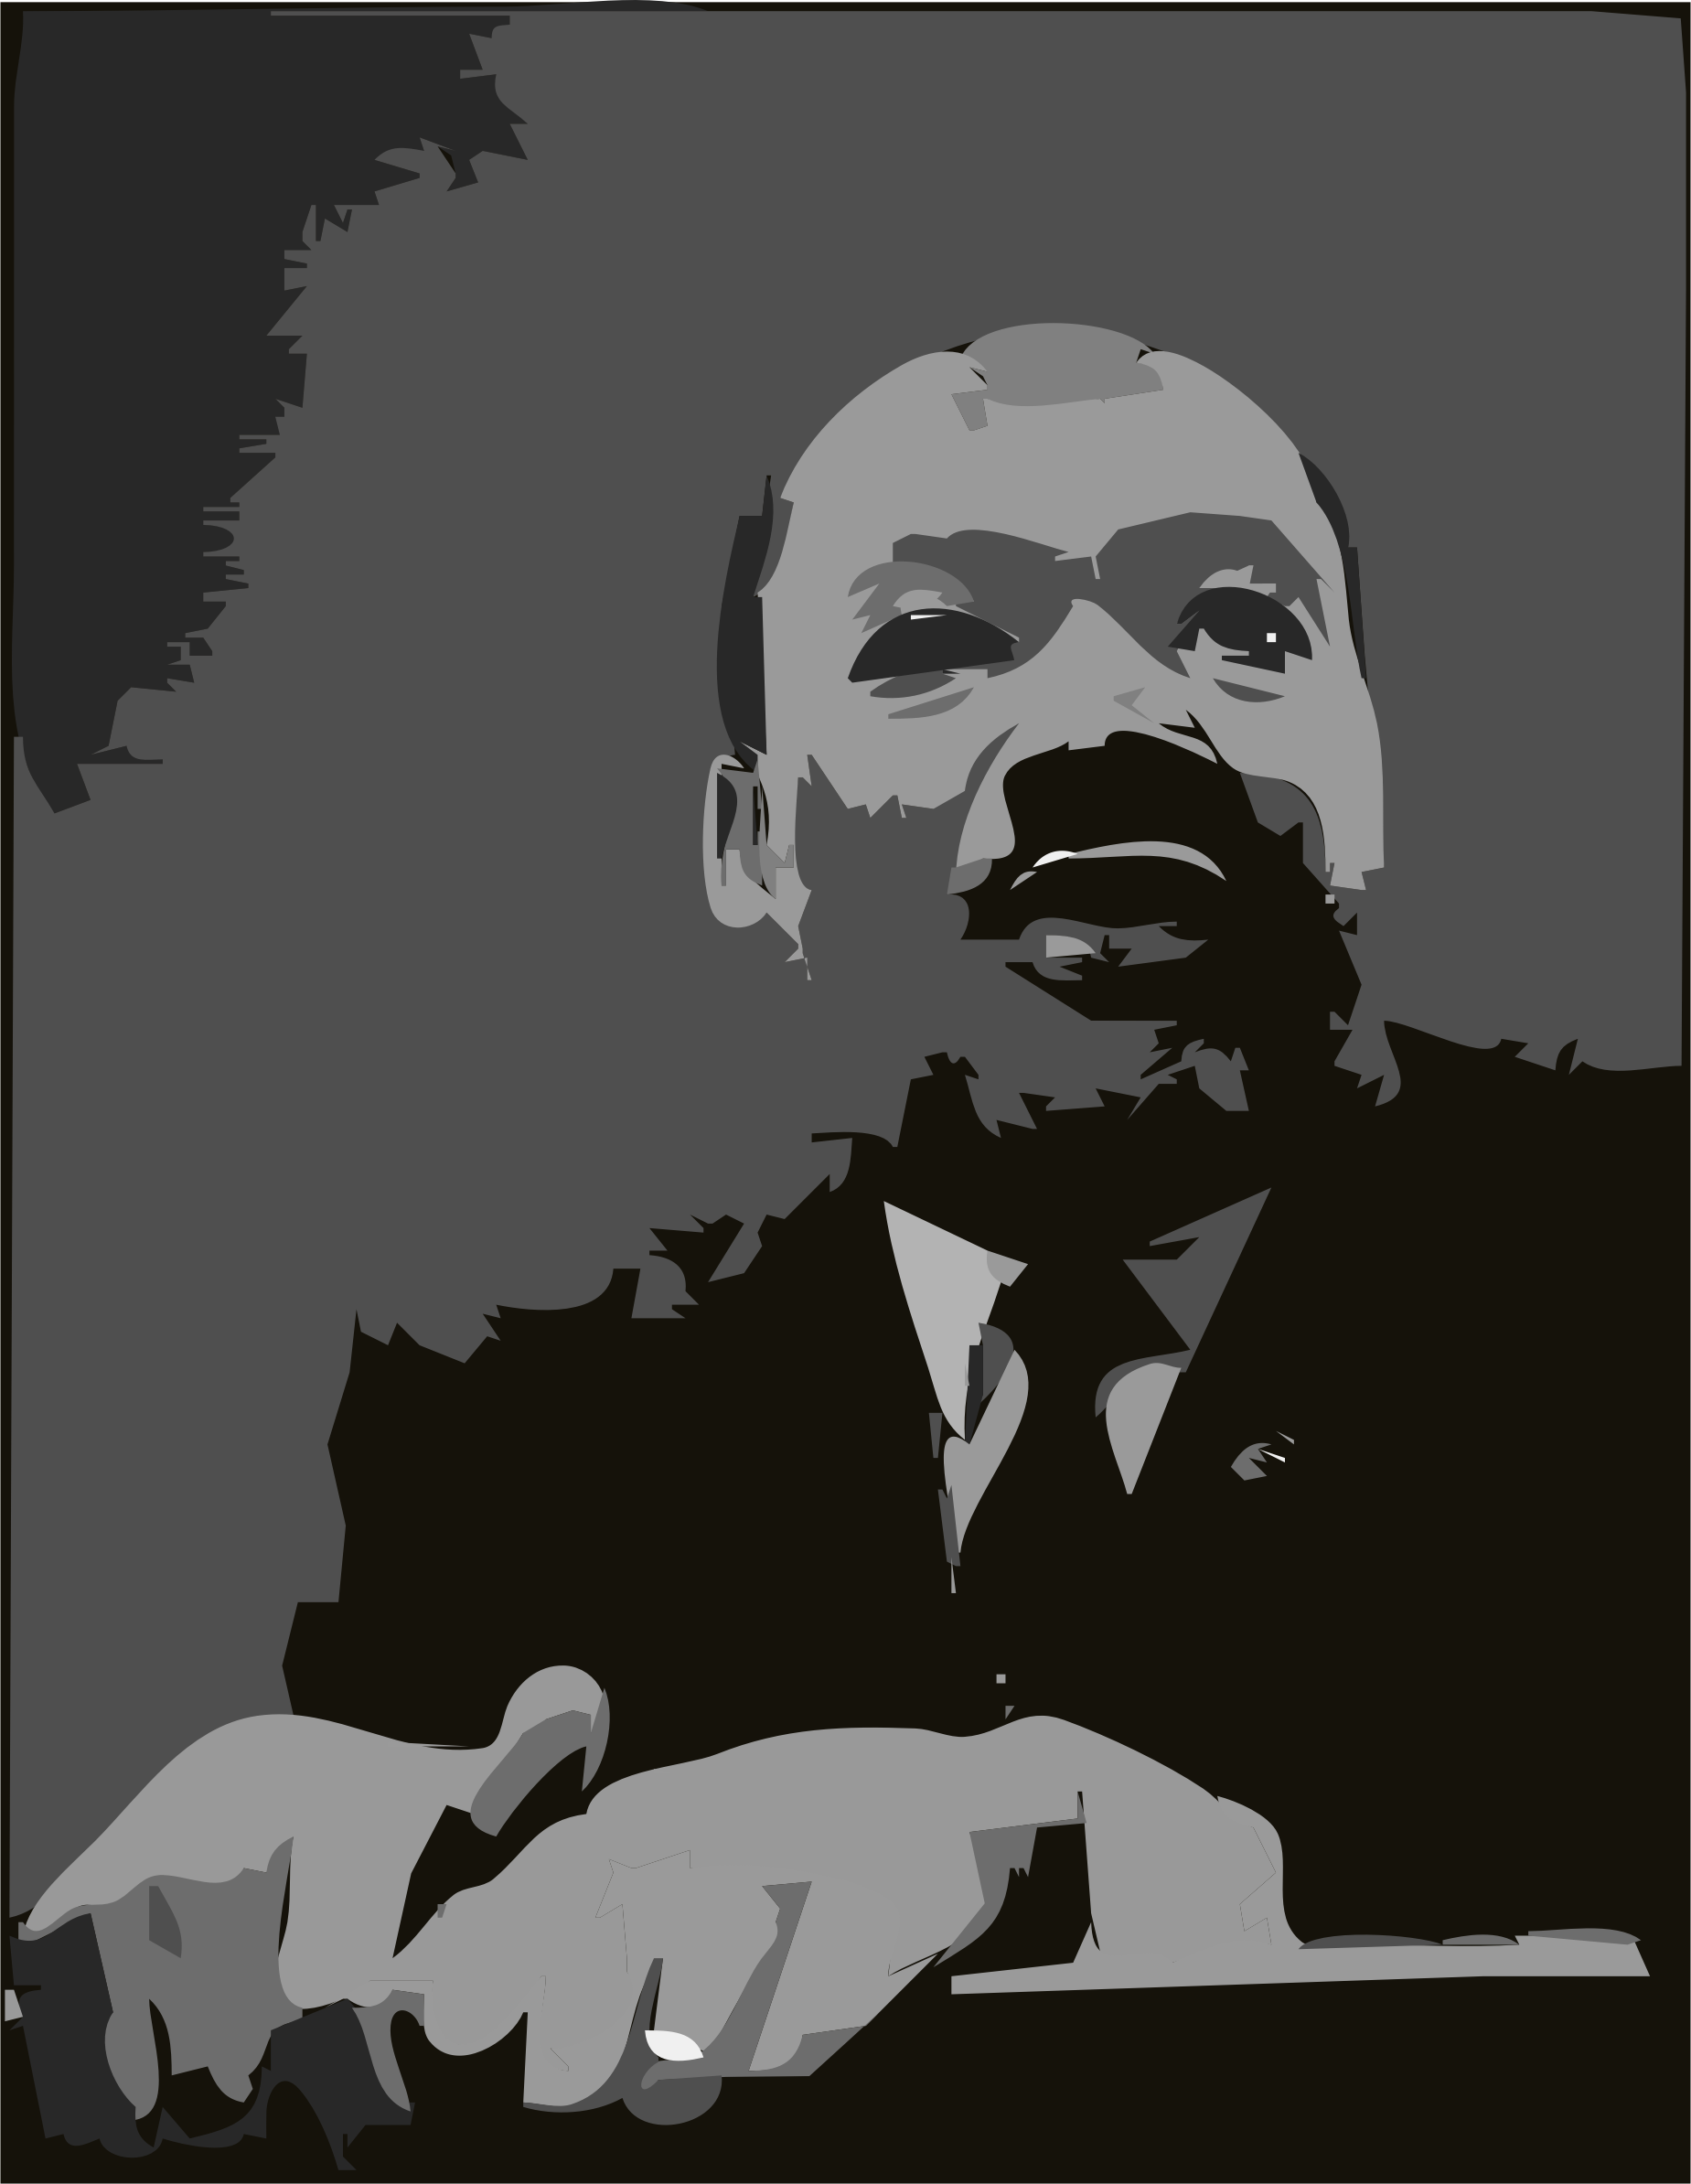 Martin Luther King Jr. at Pulpit by algotruneman